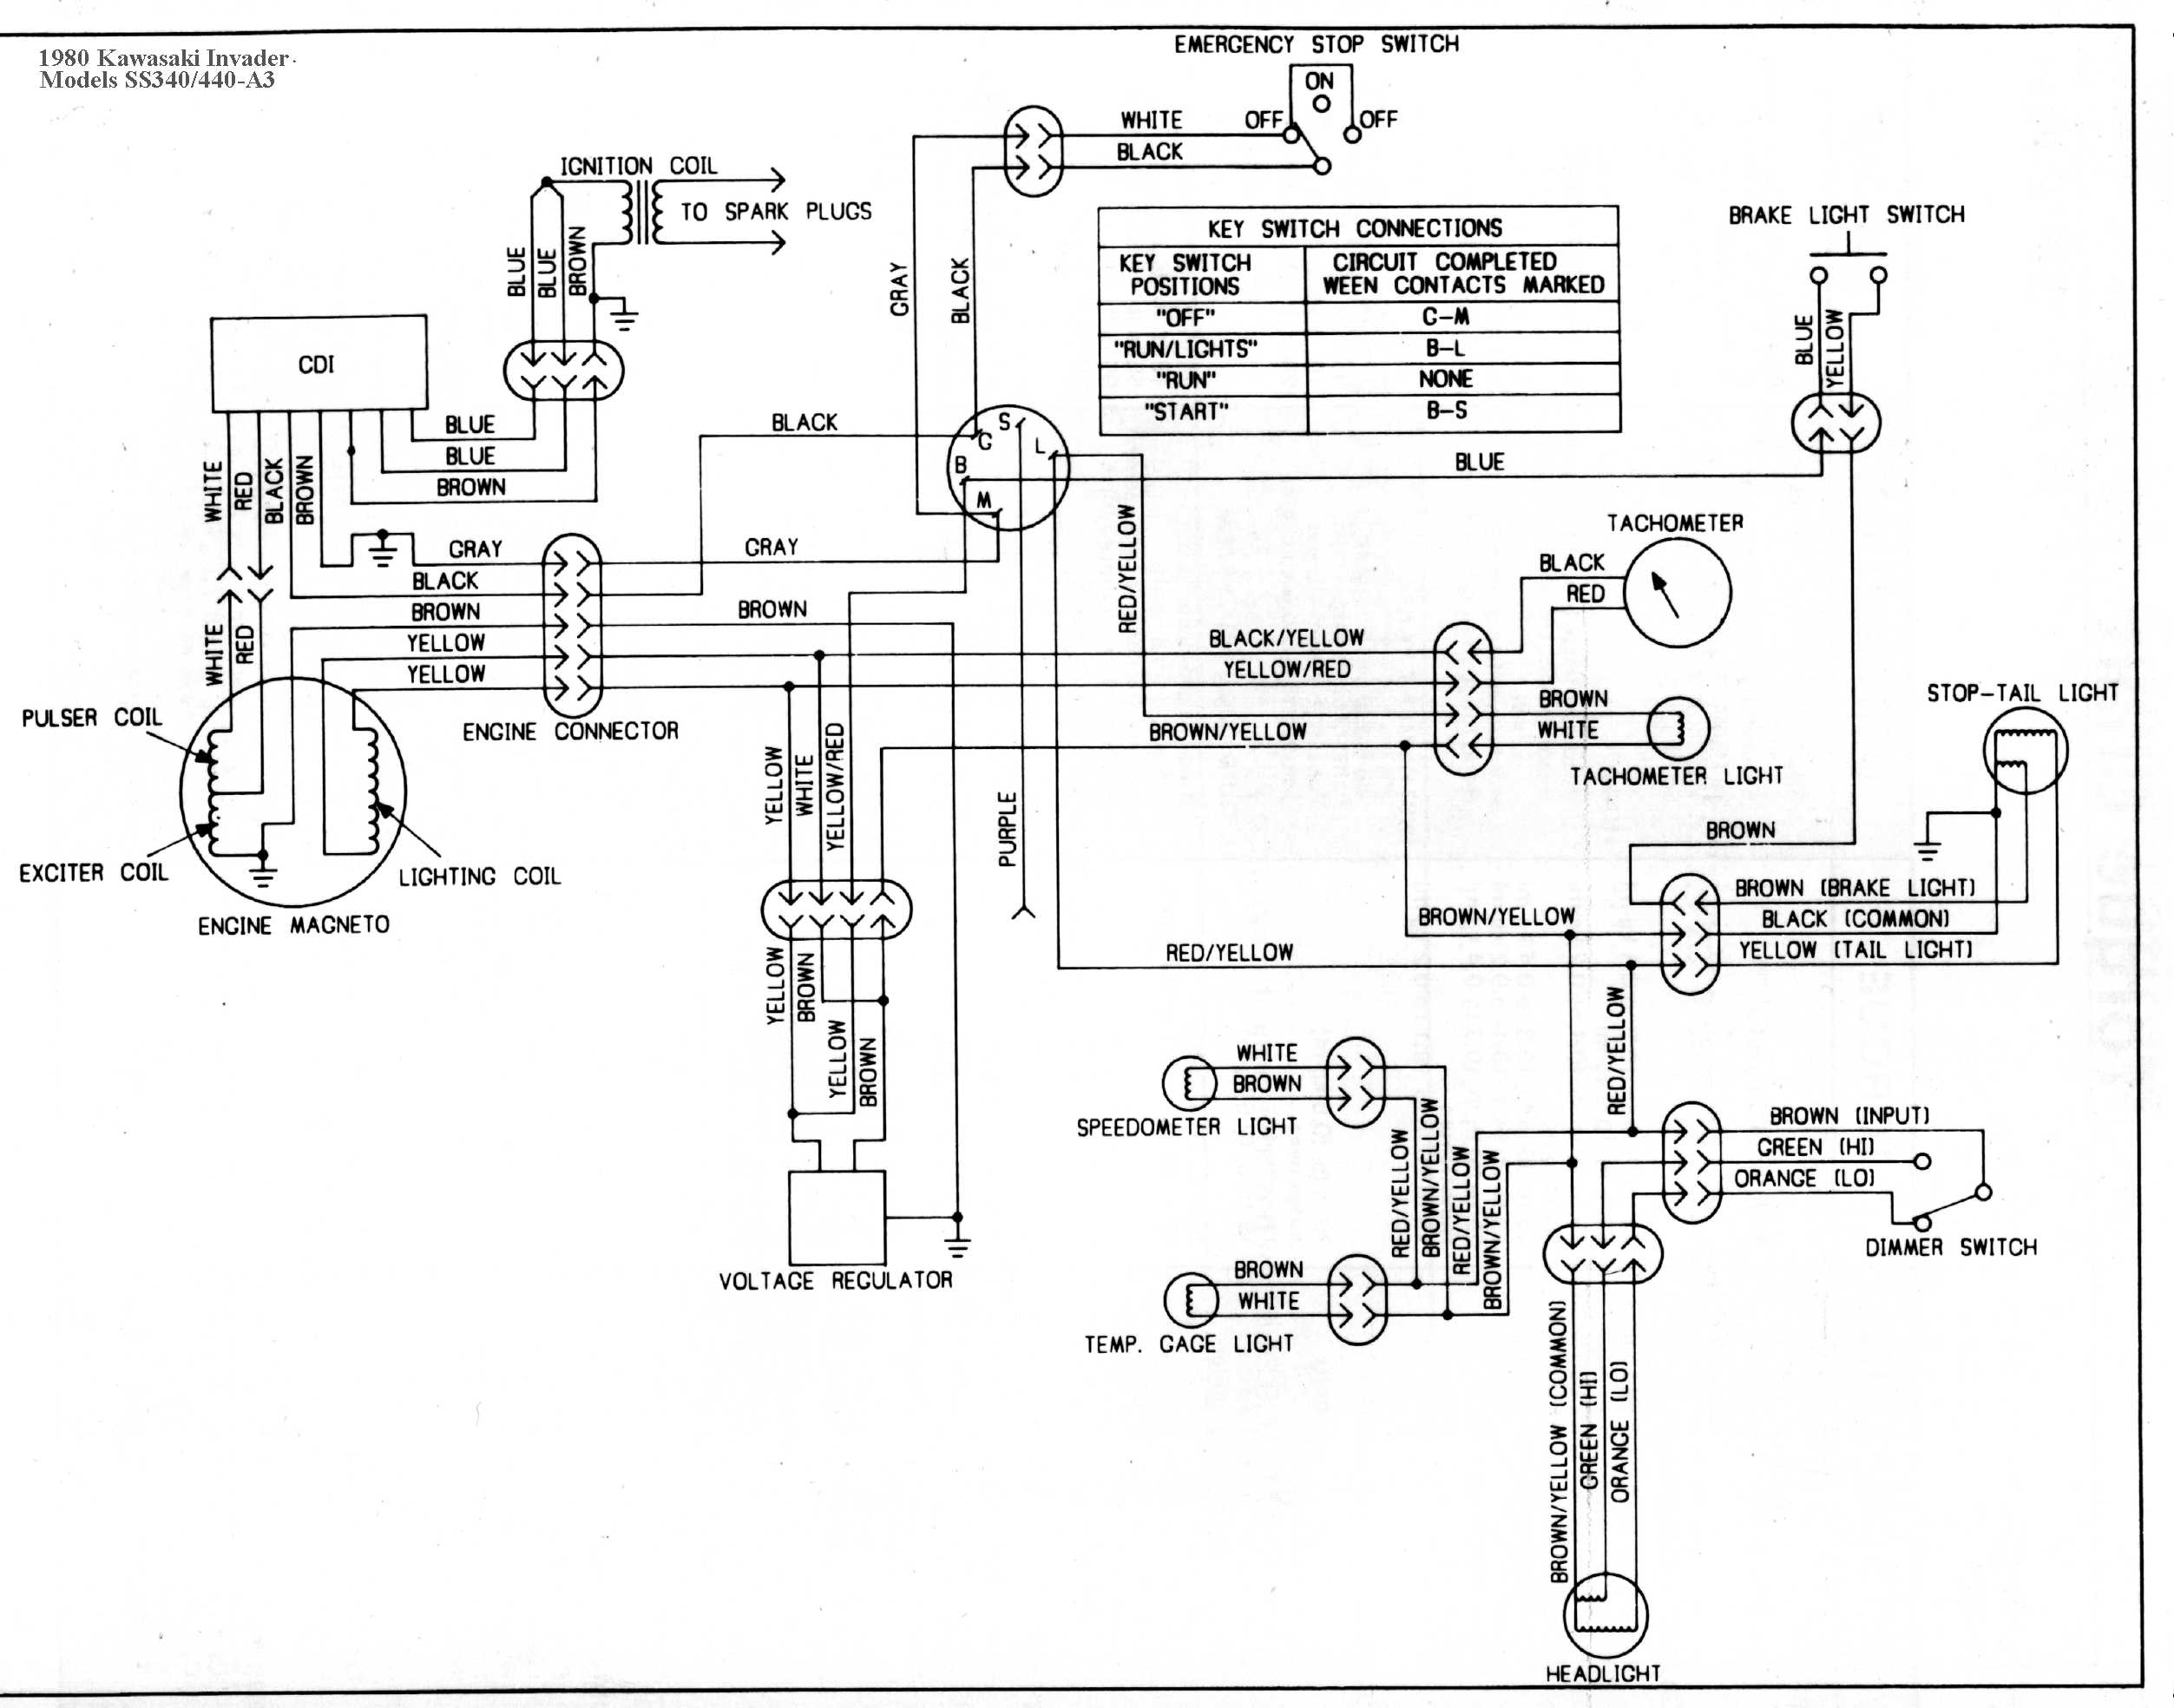 Kawasaki Invader Snowmobile Wiring Diagrams Mule 550 Diagram Schematic Library U2022 Rh 1980 Ss340 440 A3